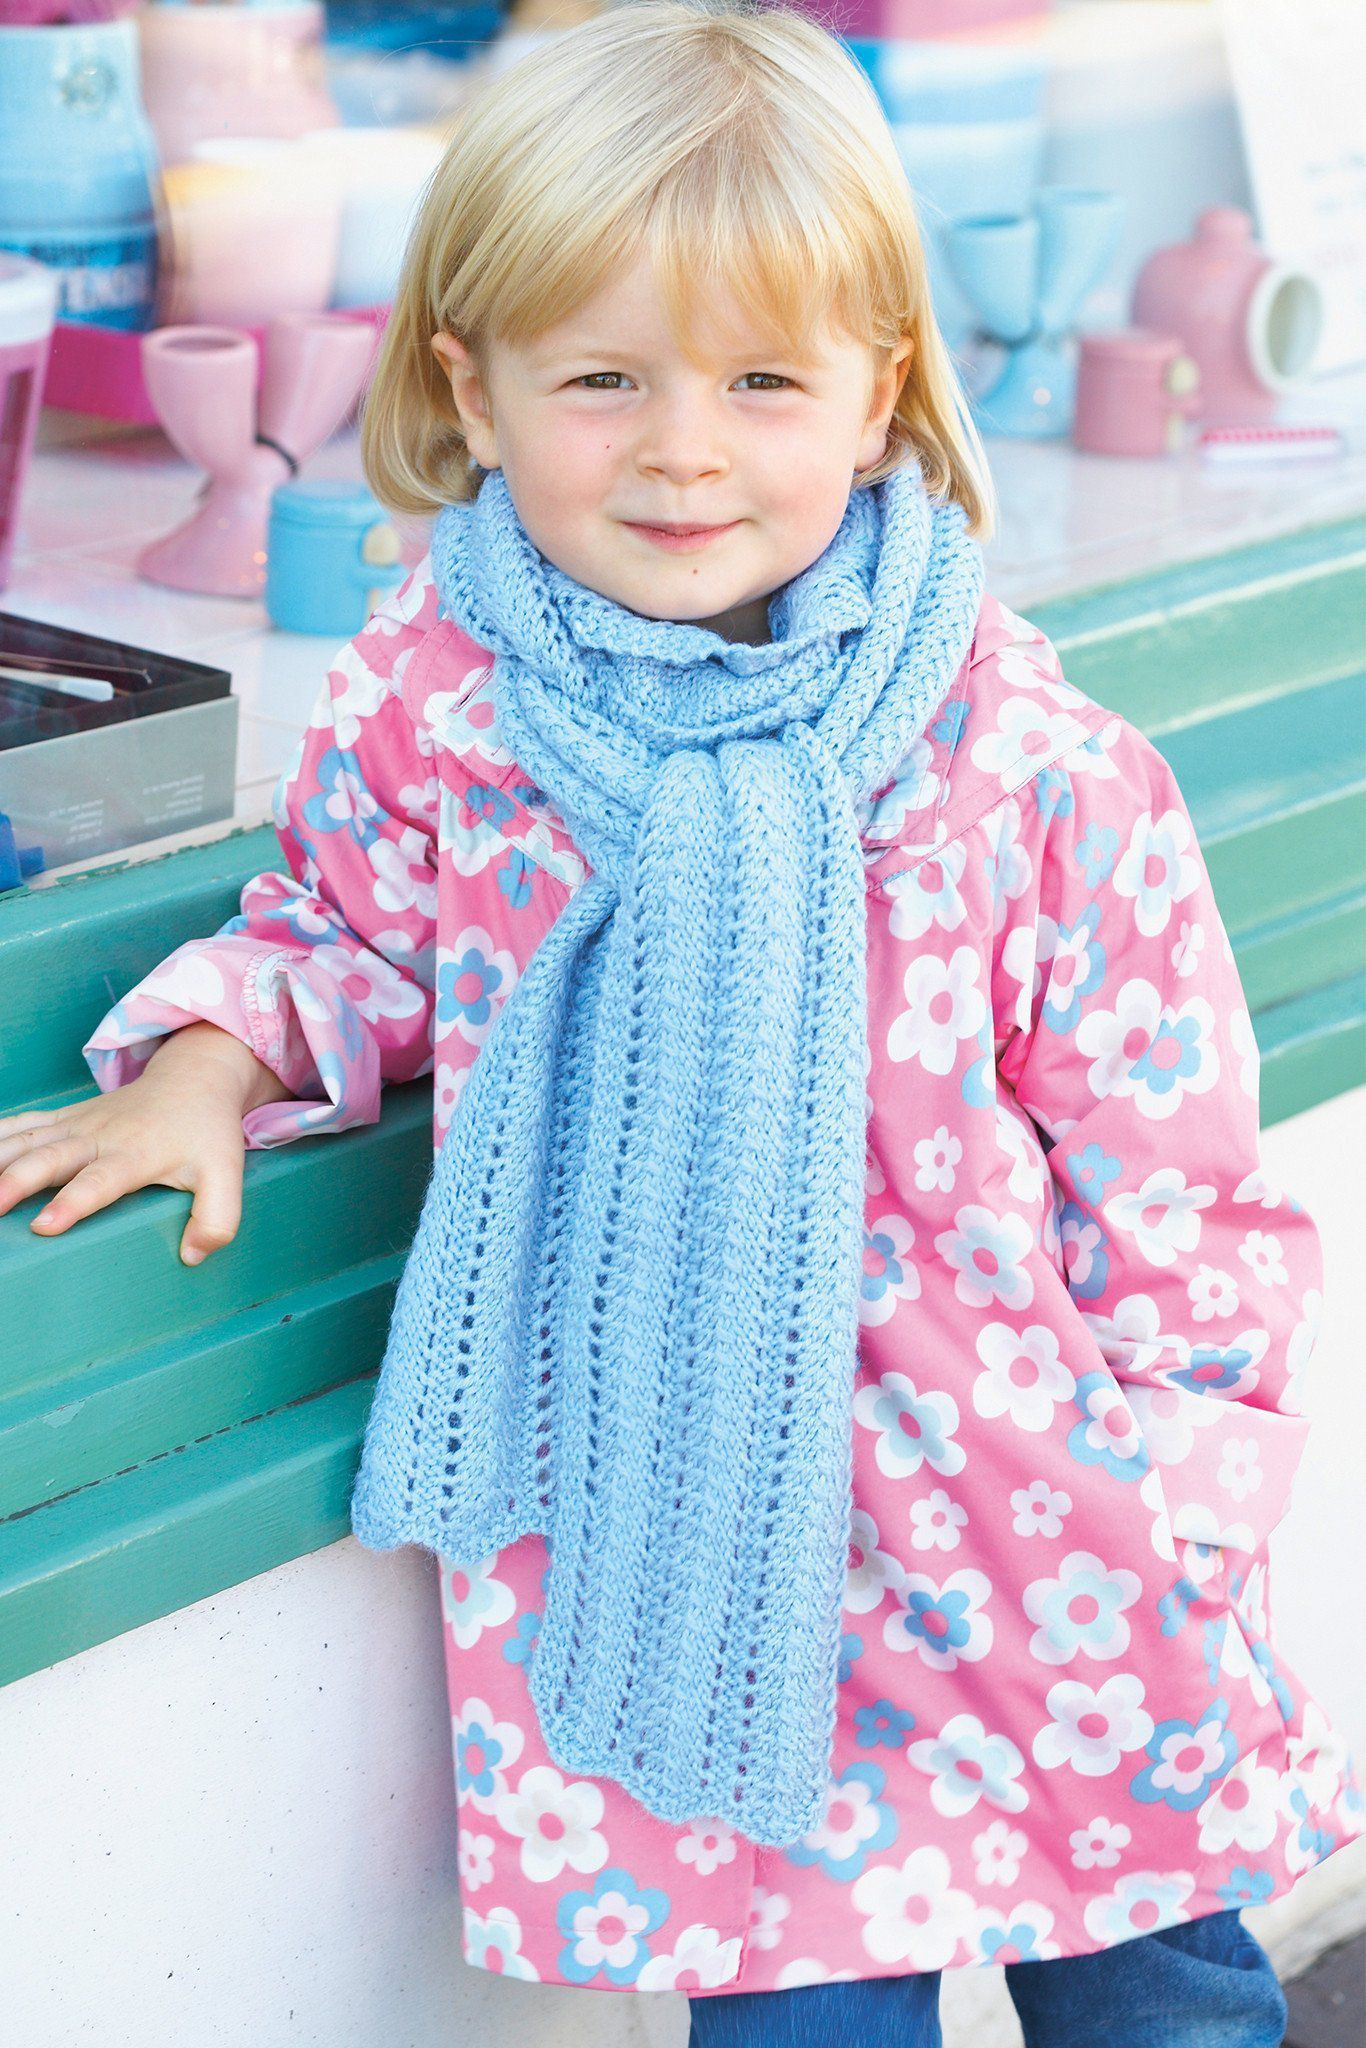 Girls Winter Lace Scarf Knitting Pattern – The Knitting Network